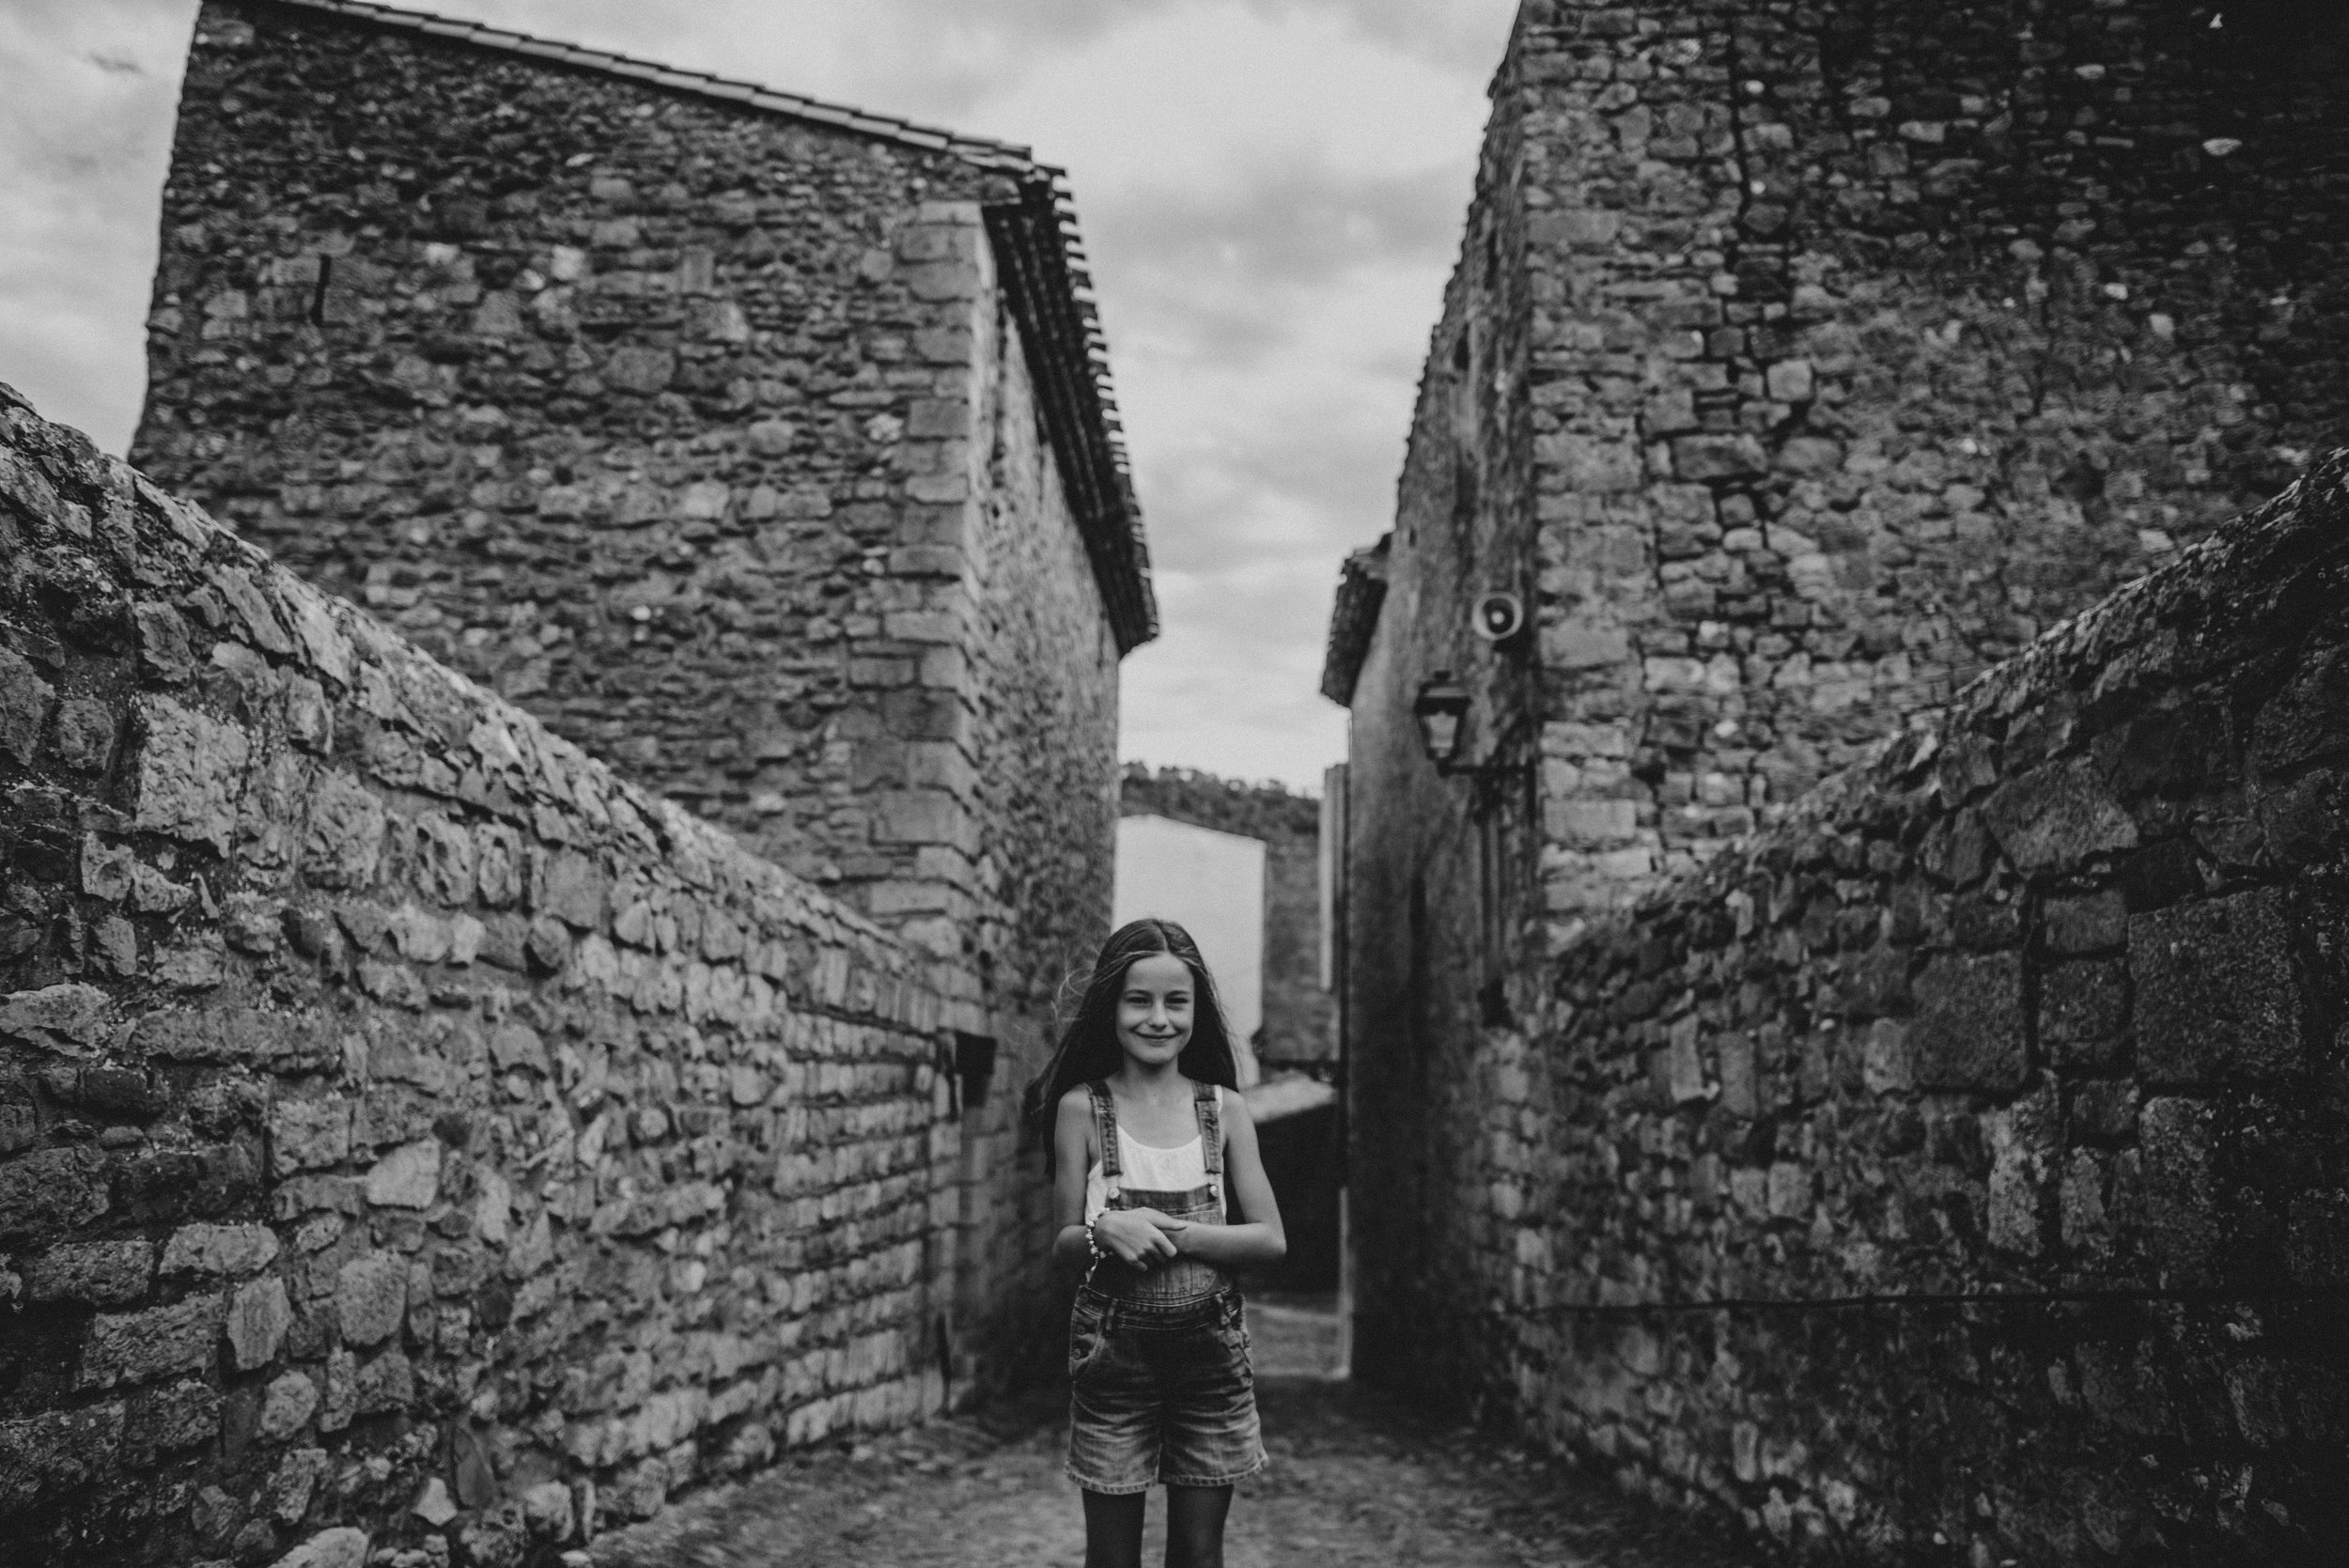 Young girl stand on bridge at Lagrasse France Essex UK Documentary Portrait Photographer